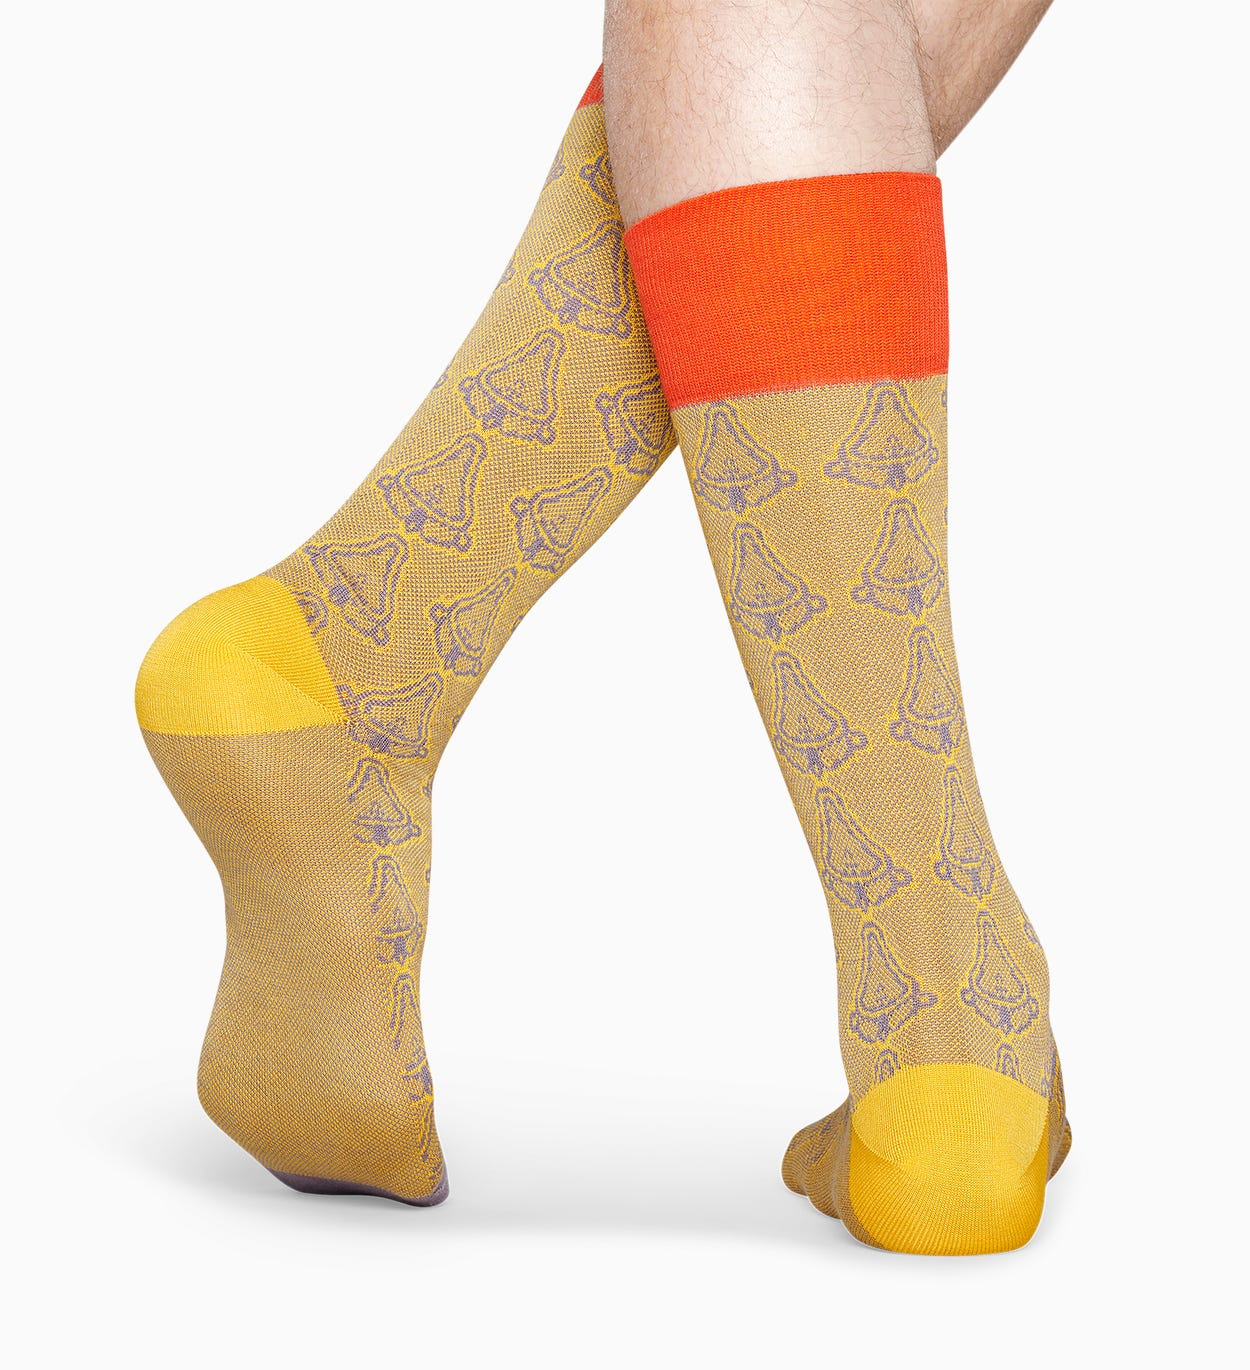 Gelb Anzugsocken: Kunst - Dressed | Happy Socks